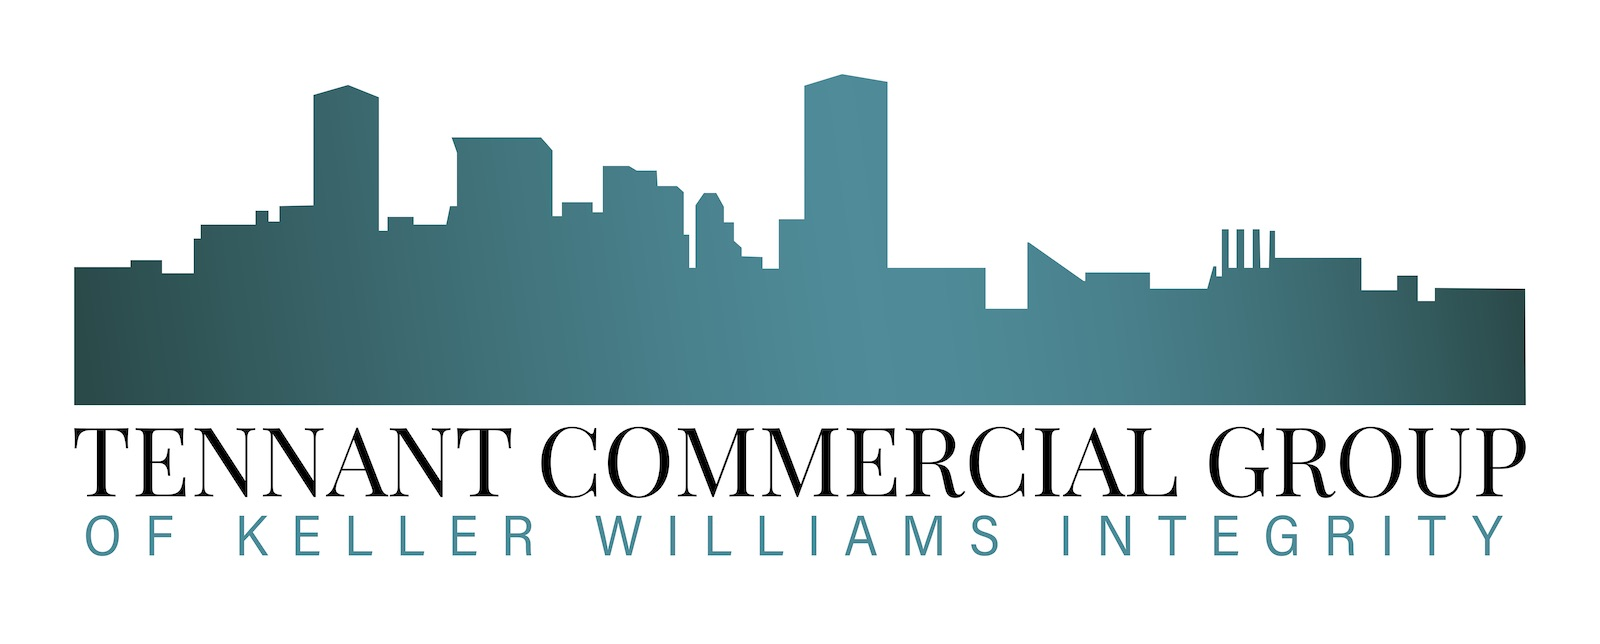 TENNANT COMMERCIAL GROUP